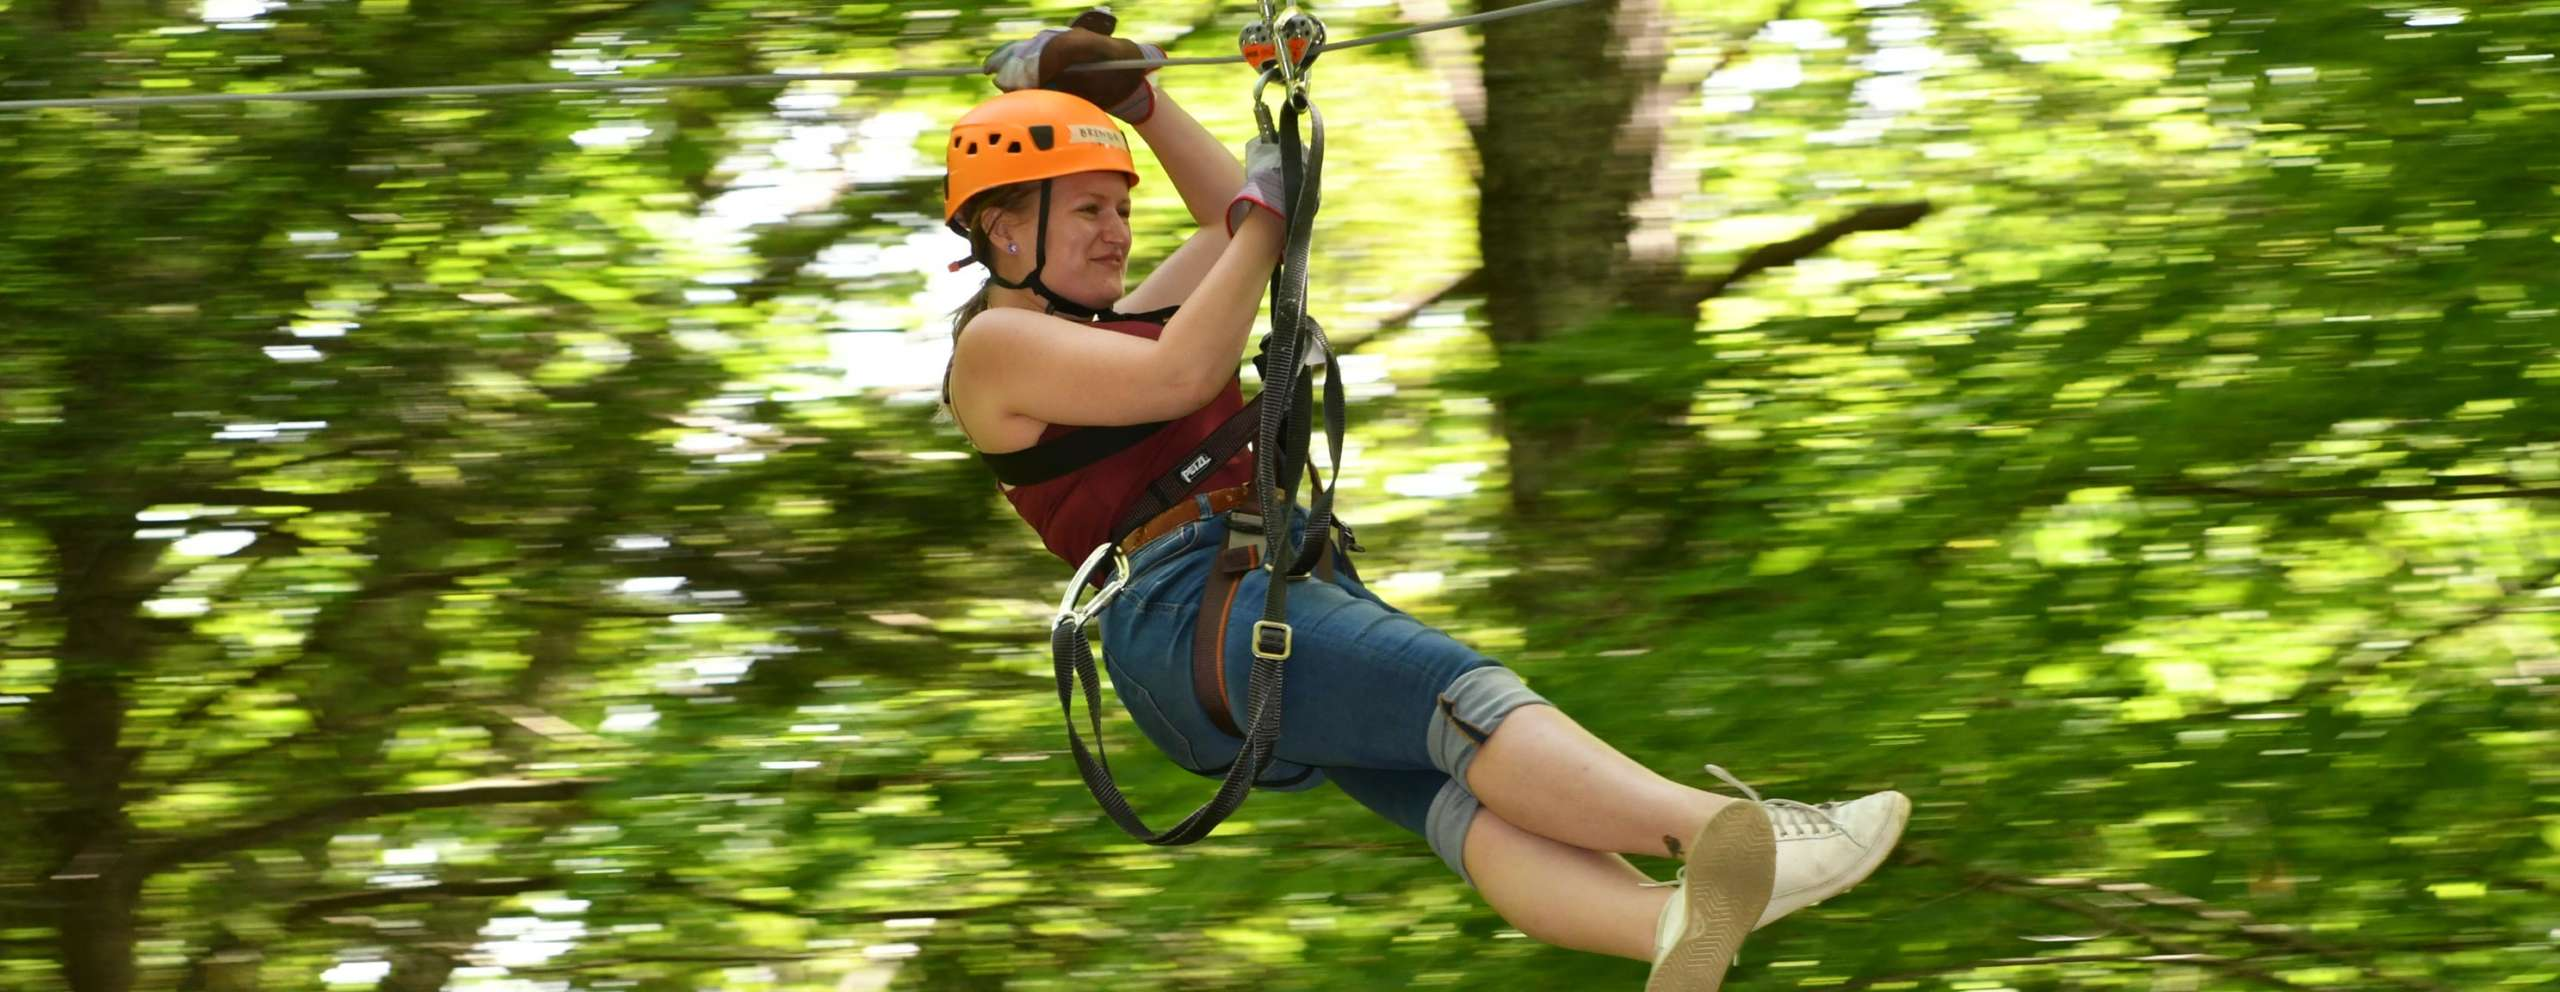 Woman zip lining through the canopy